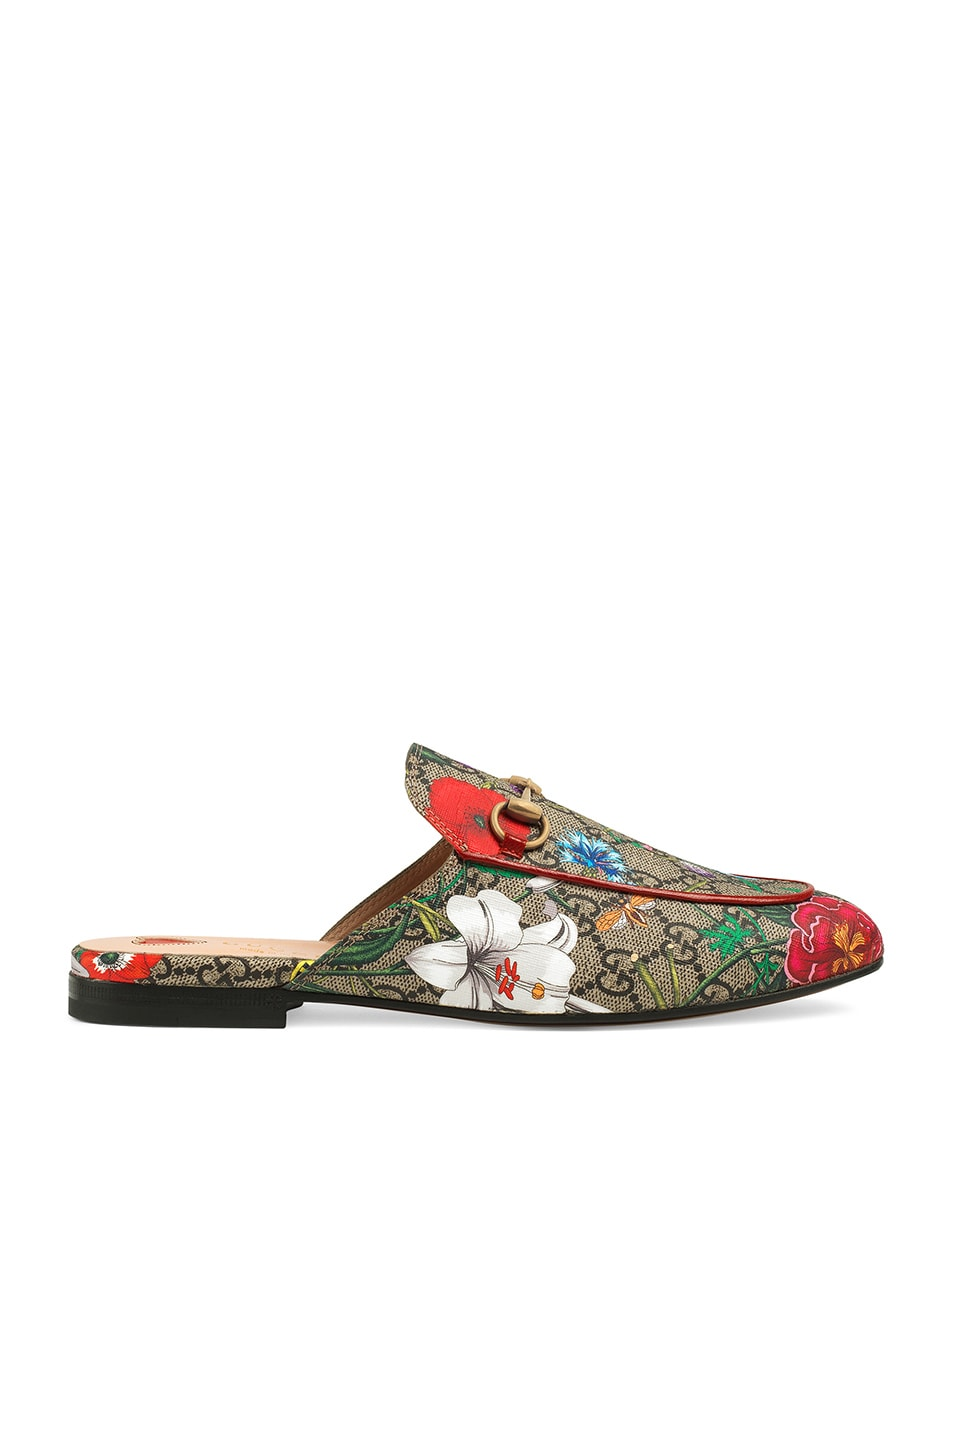 Image 1 of Gucci Princetown Slides in Beige Ebony & Multi